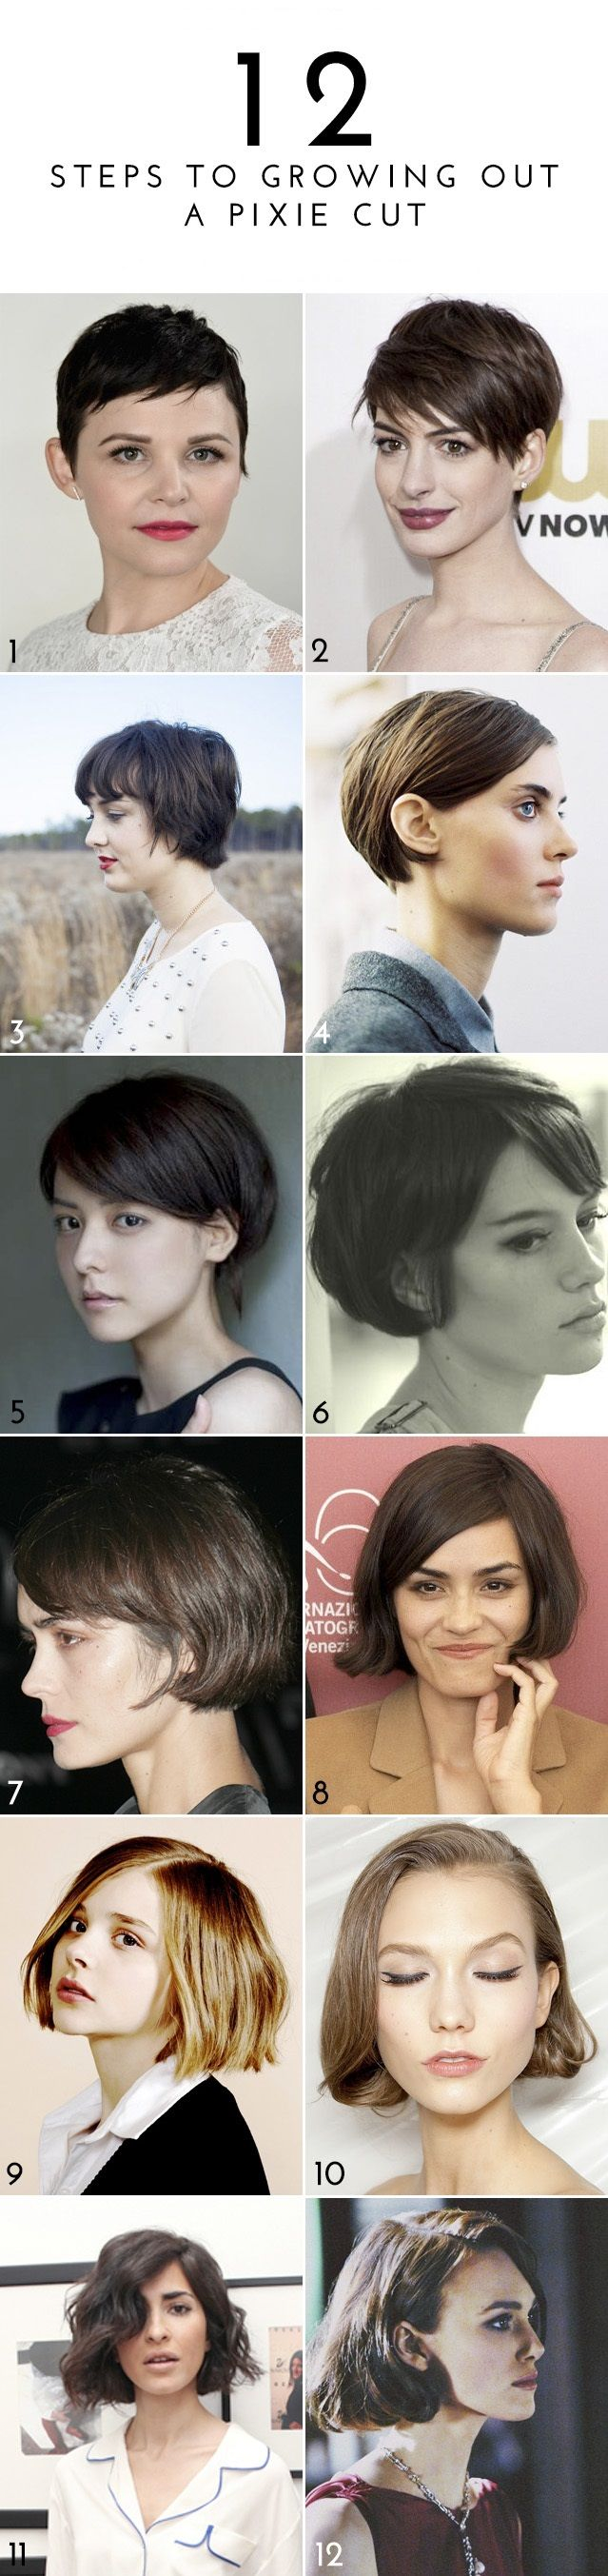 Tips on growing out your pixie cut gracefully! For more tutorials check out Sine Qua Non's blog! #iamsine #SQNchicago